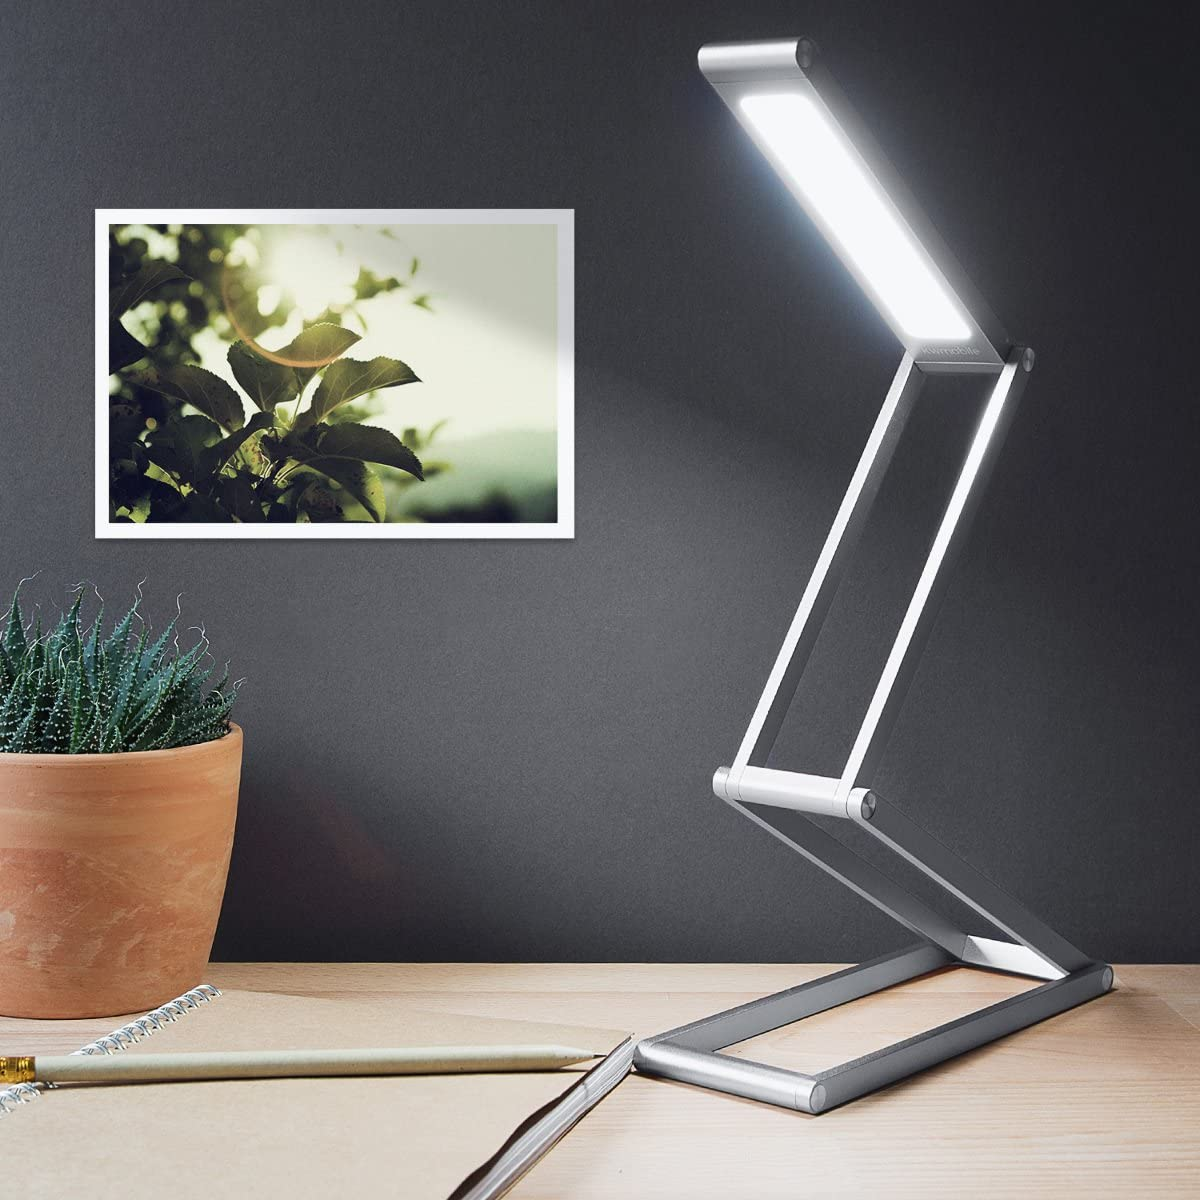 Dimmable Portable Aluminium Table Light for Home Studying Travel with Micro USB kwmobile Rechargeable LED Folding Desk Lamp Gold Reading